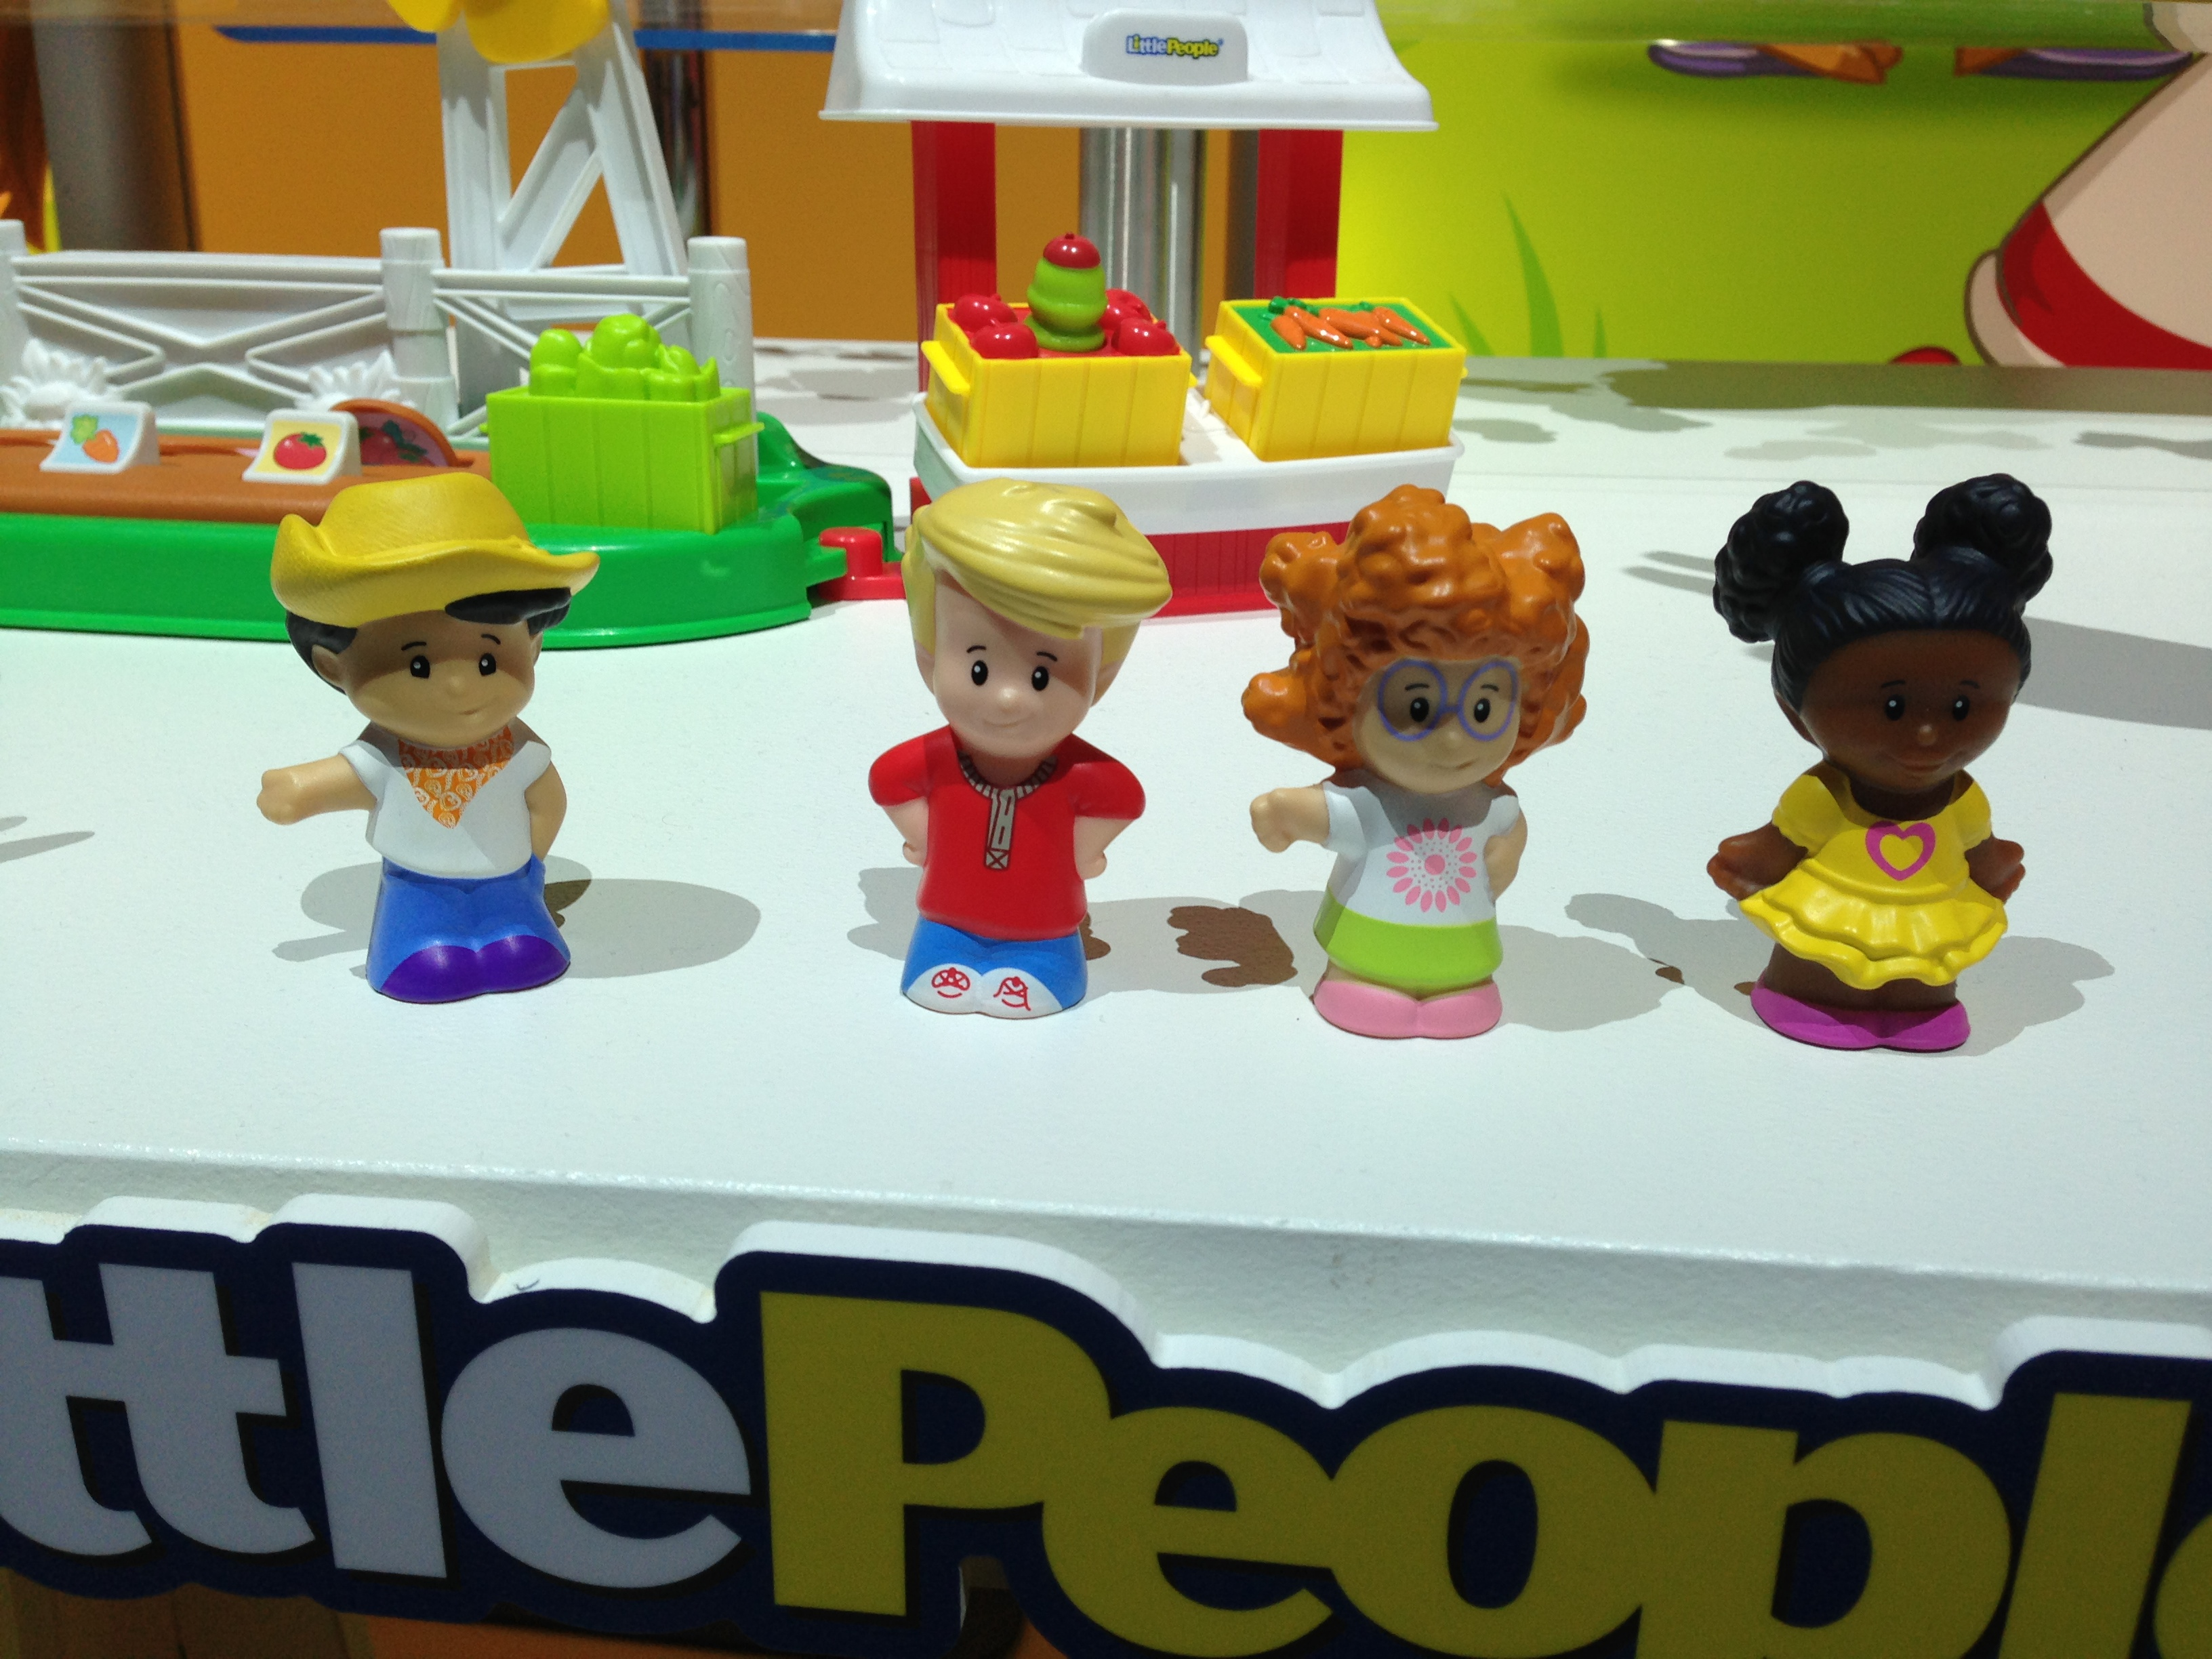 Meet Fisher-Price's new Little People! They've got an updated look, and fun-loving personalities to match.